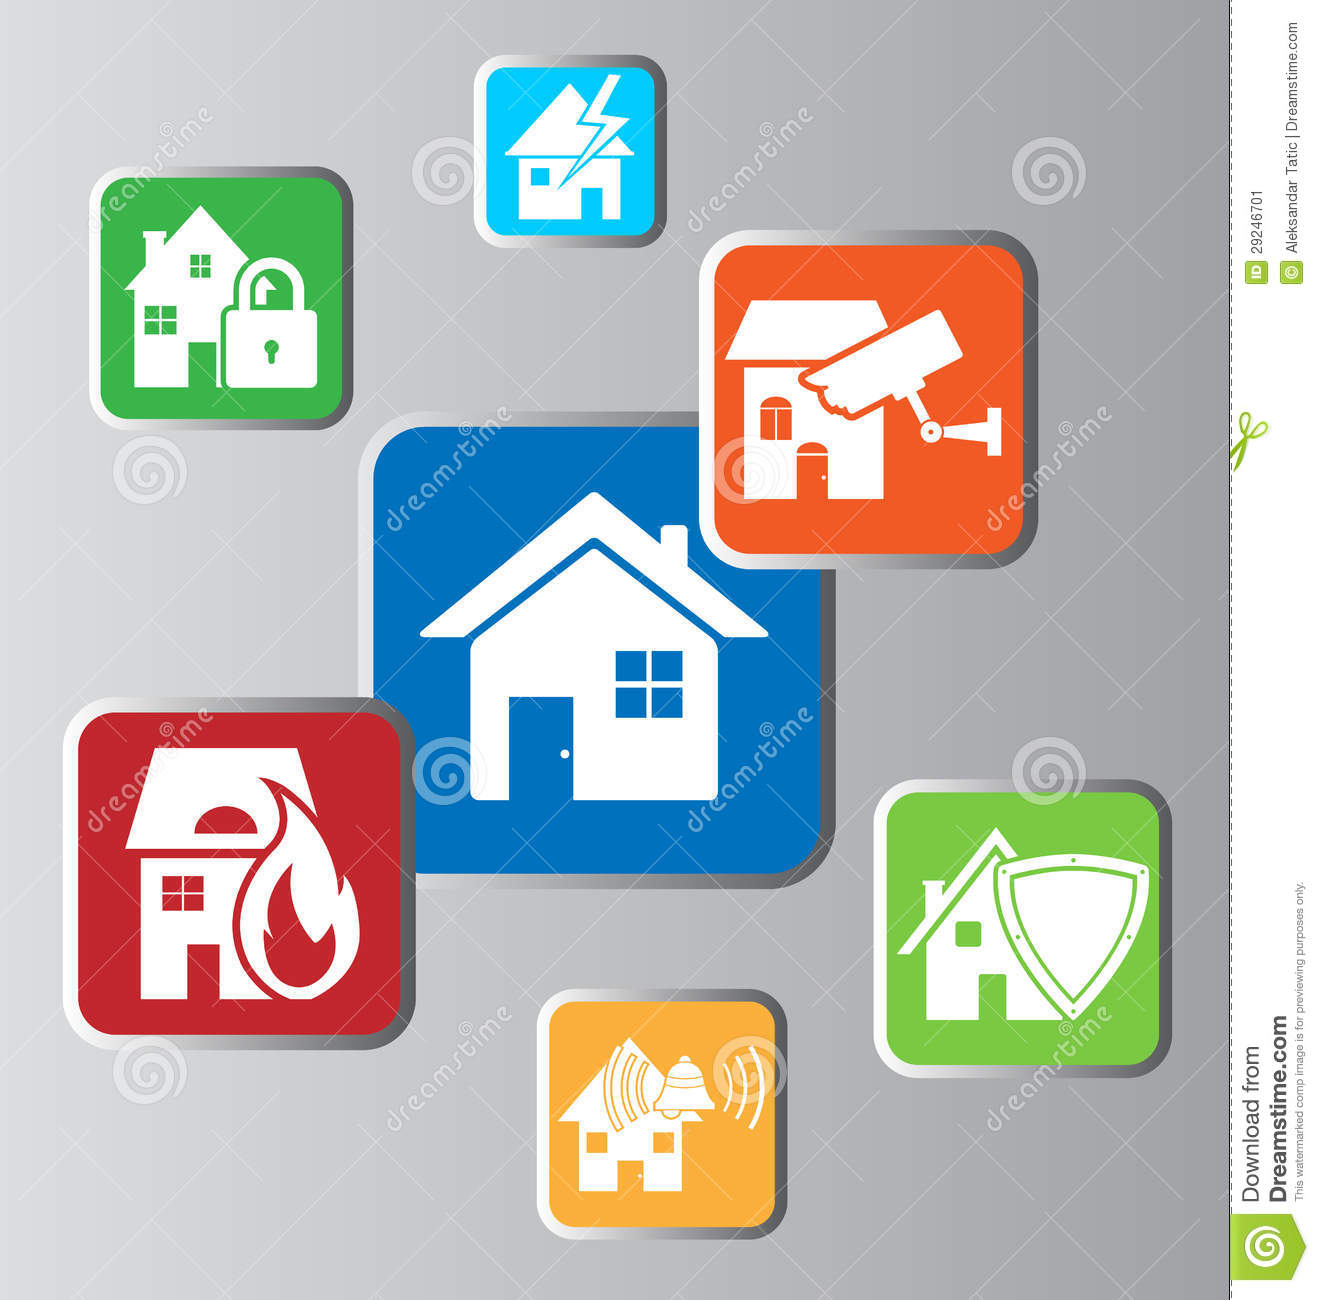 Home Security Stock Image Image 29246701